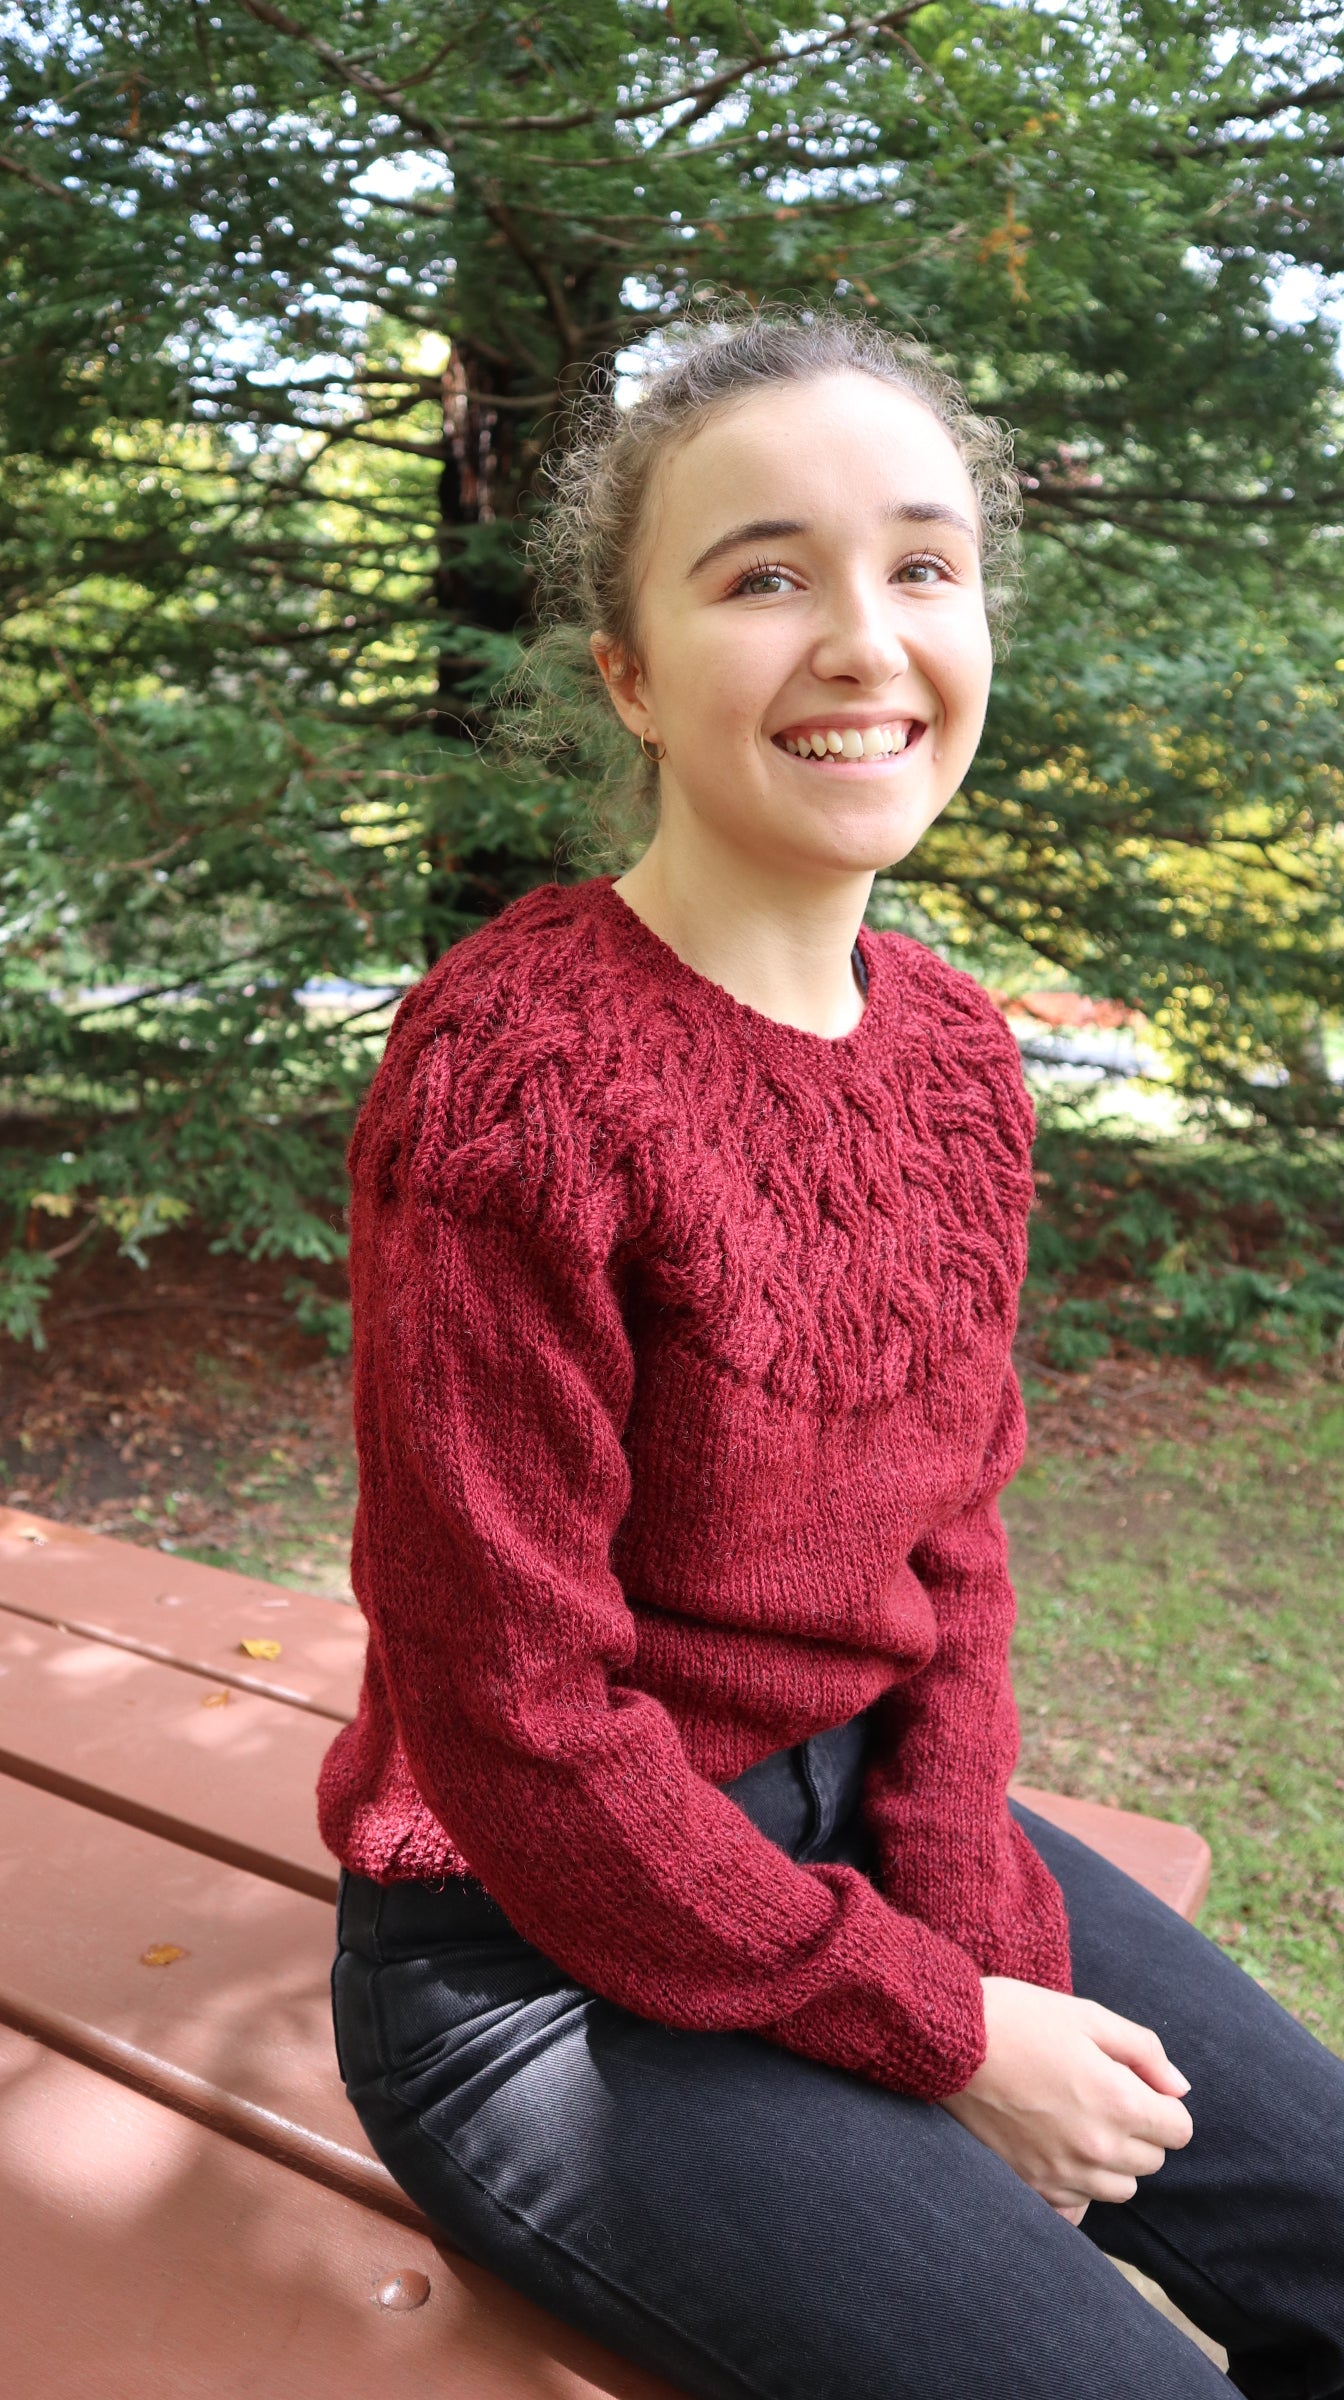 Fair Trade Ethical Women's Woollen Jumper with Yoke